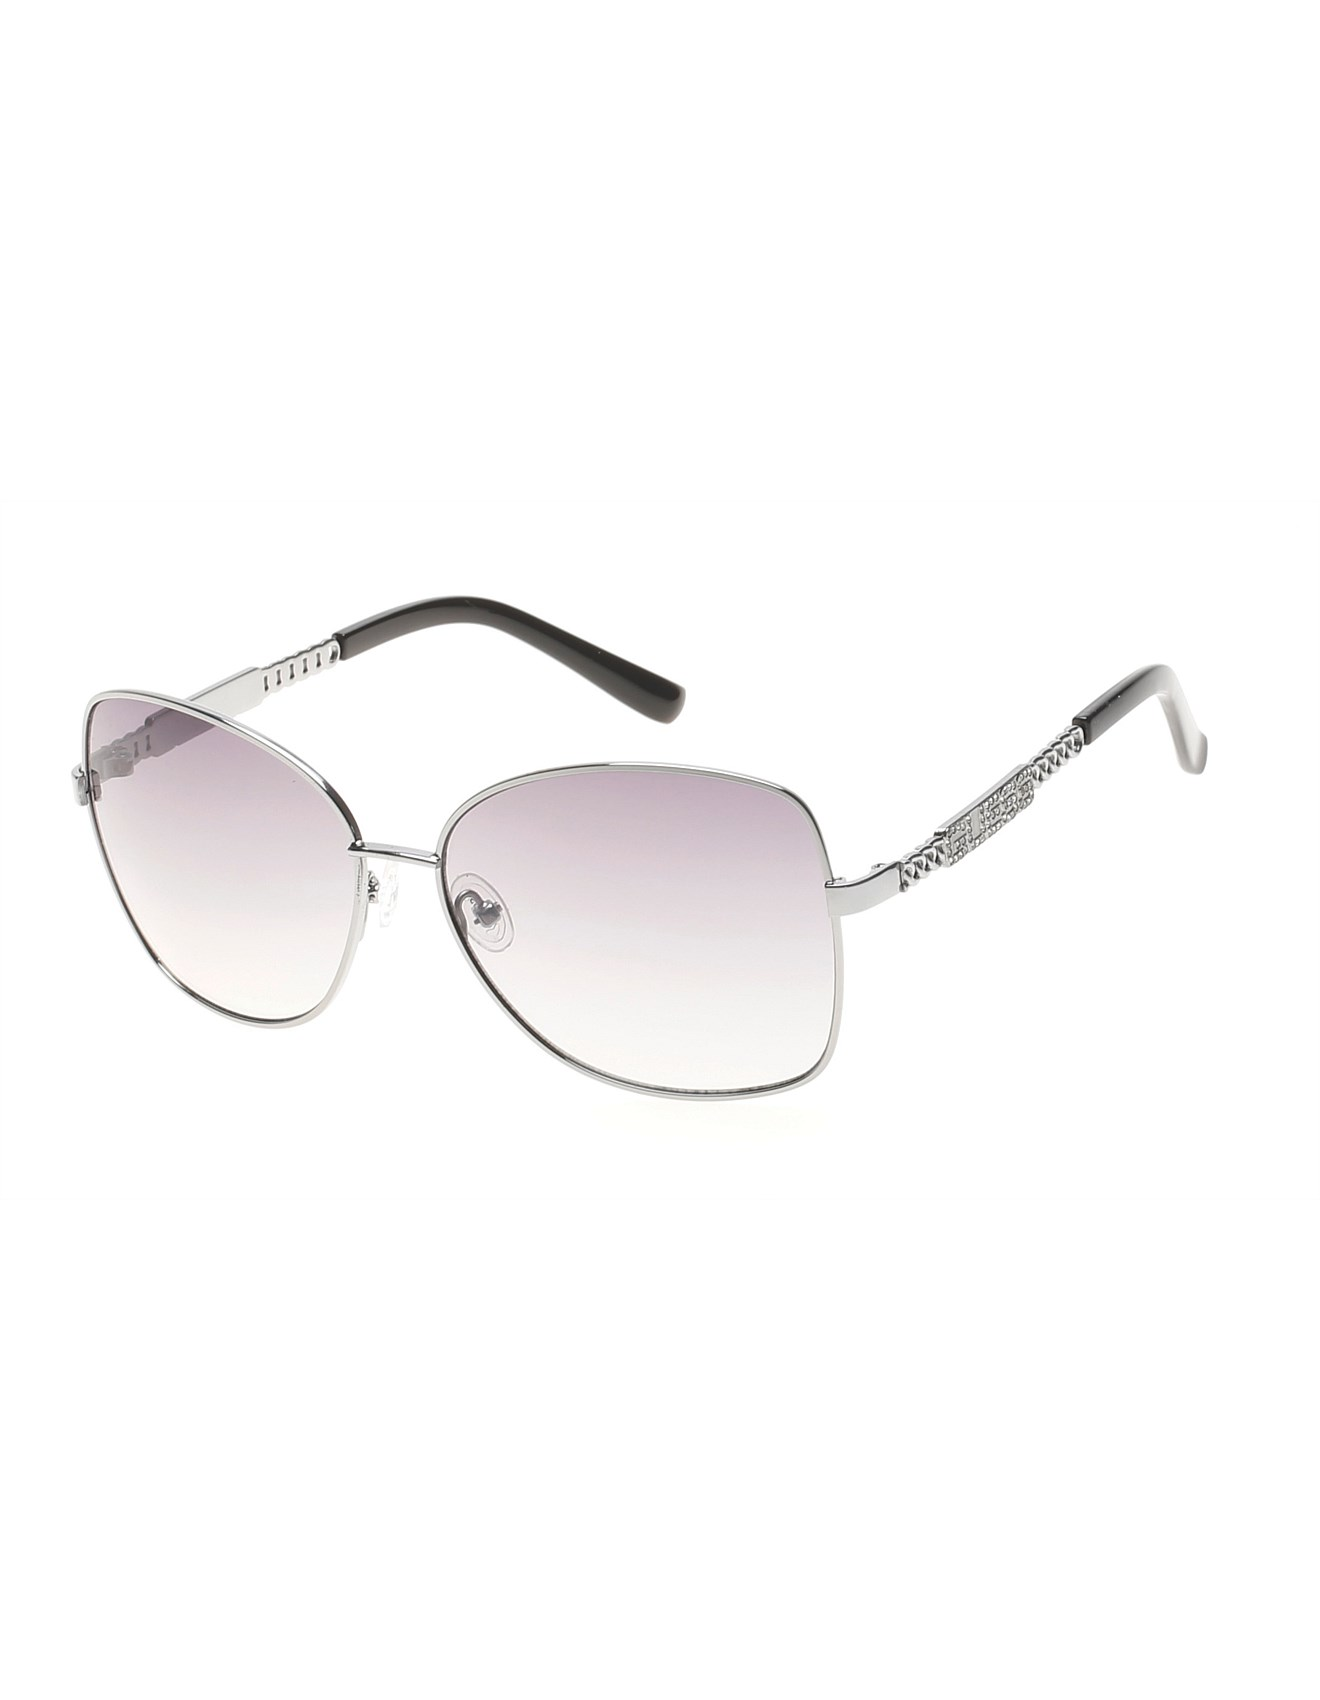 25817241e022 GUESS WOMENS BUTTERFLY METAL SUNGLASSES